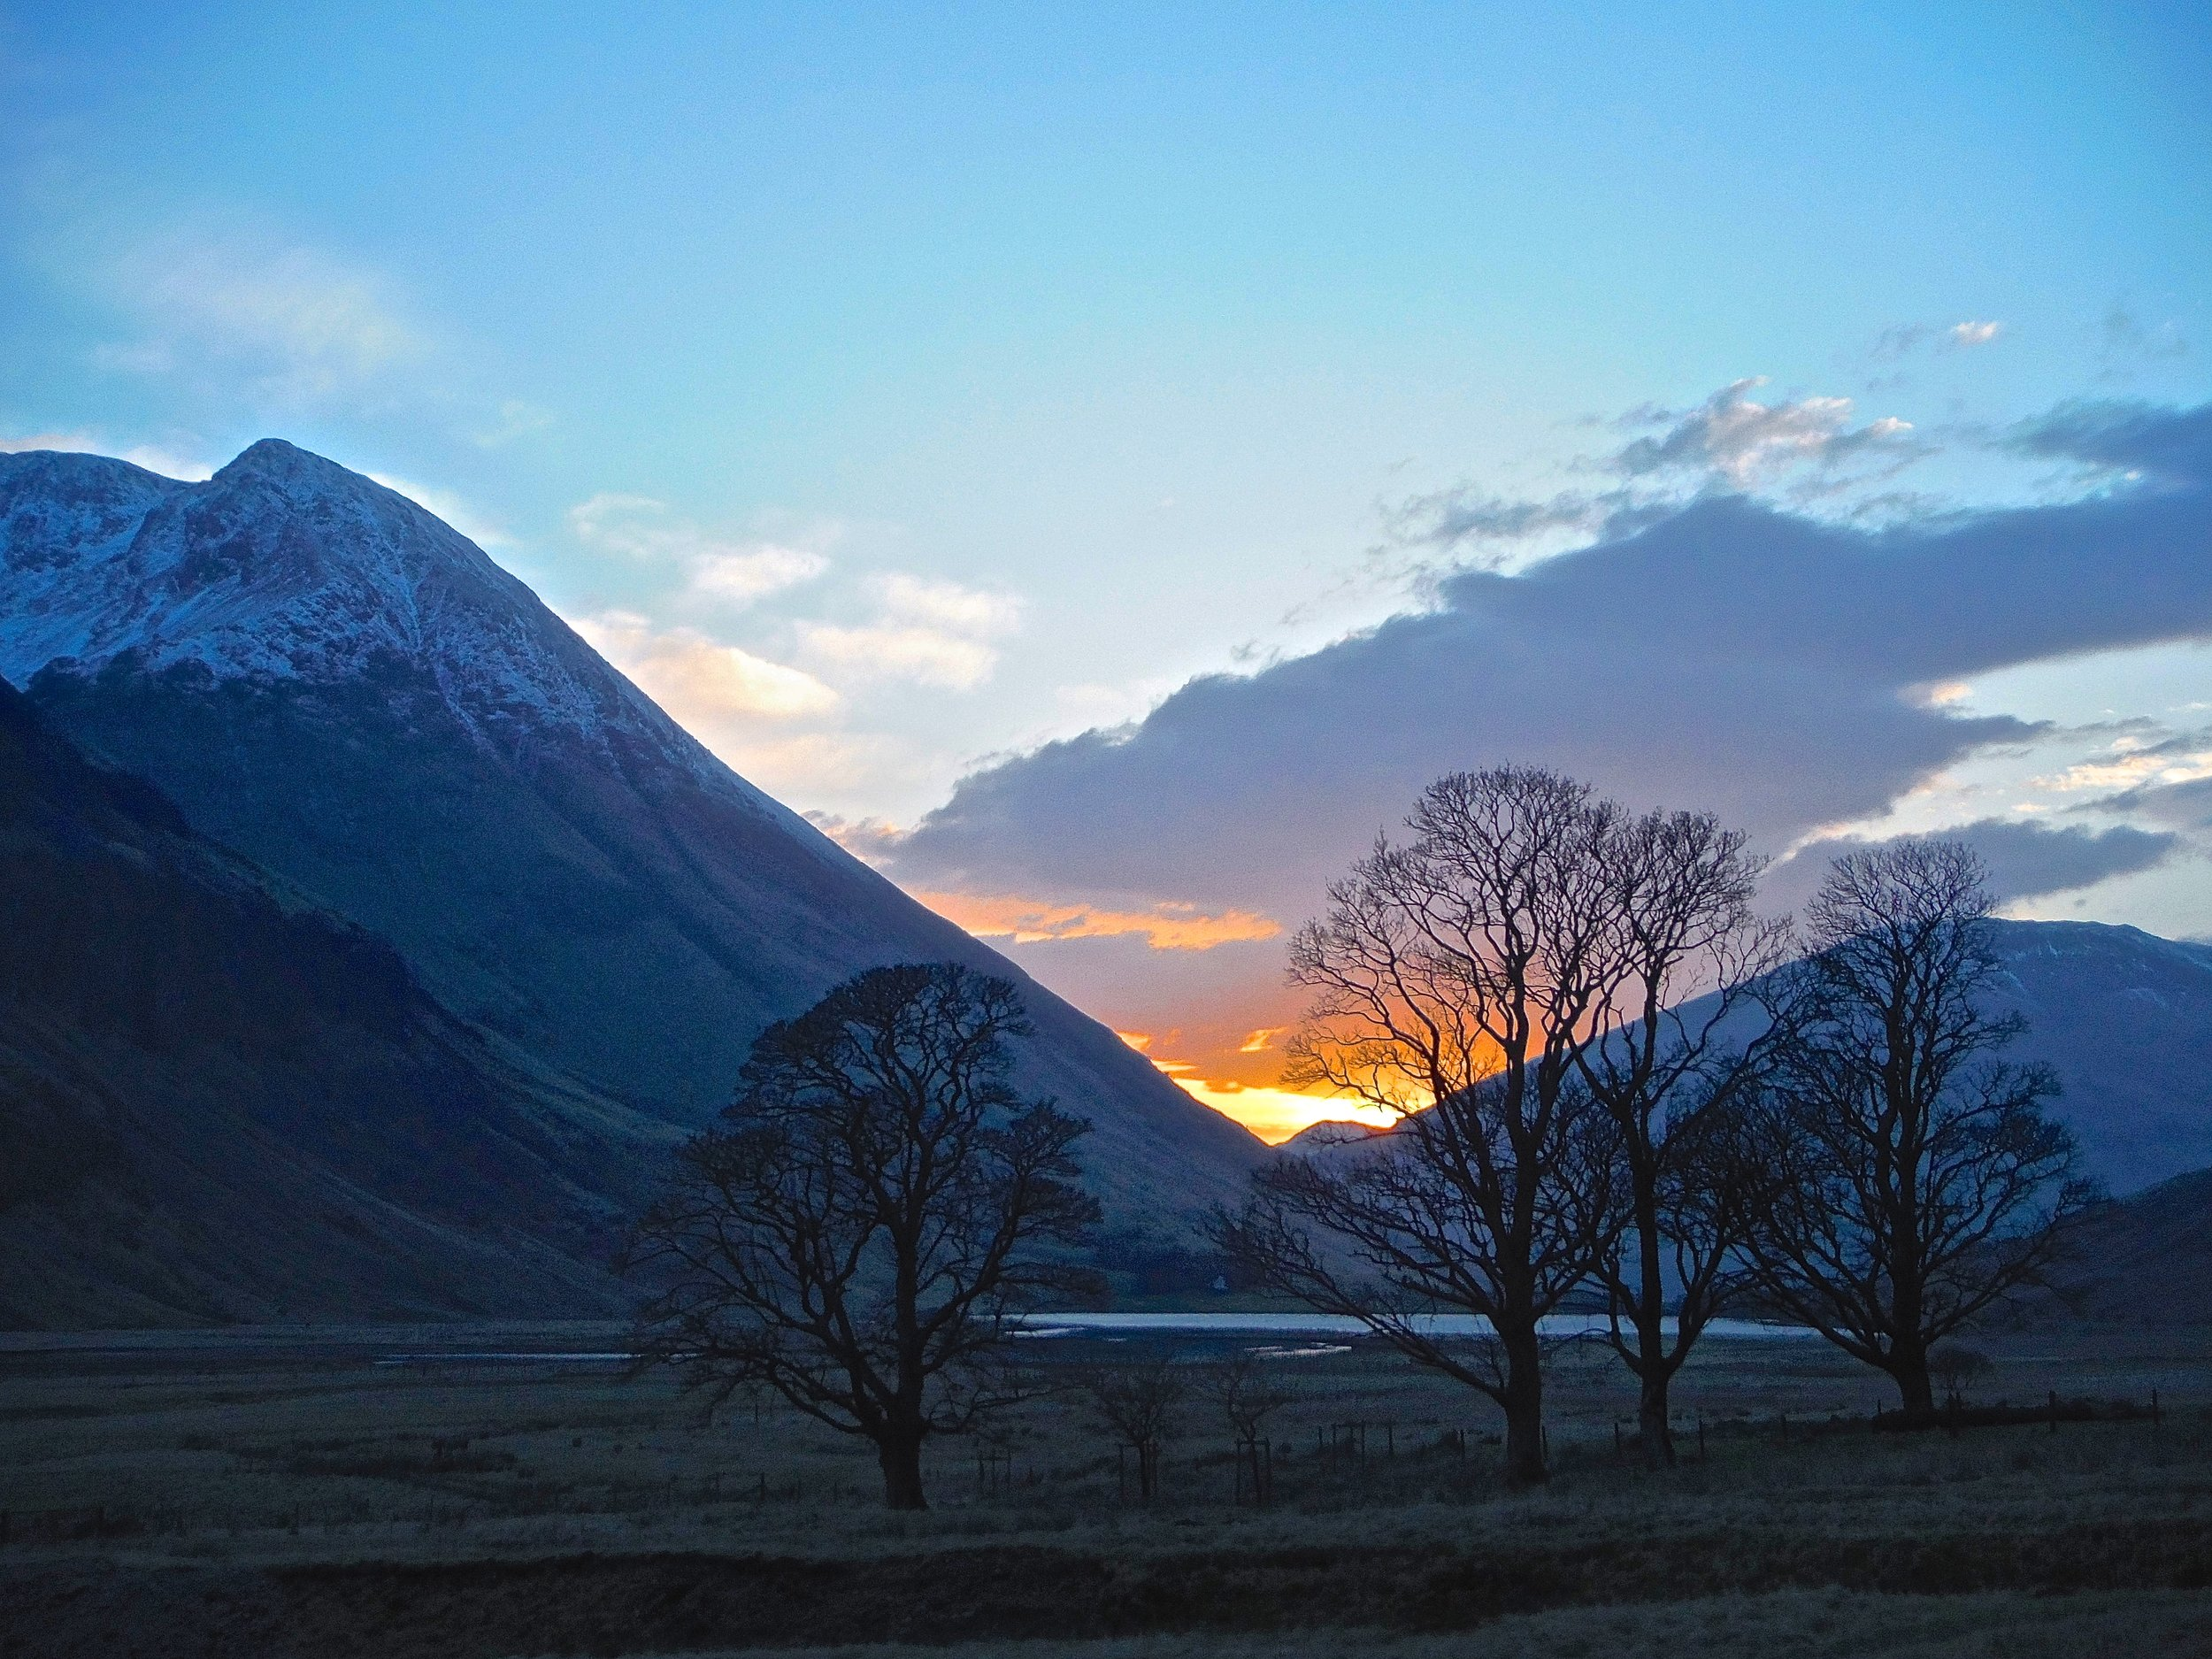 Sunset near Glencoe